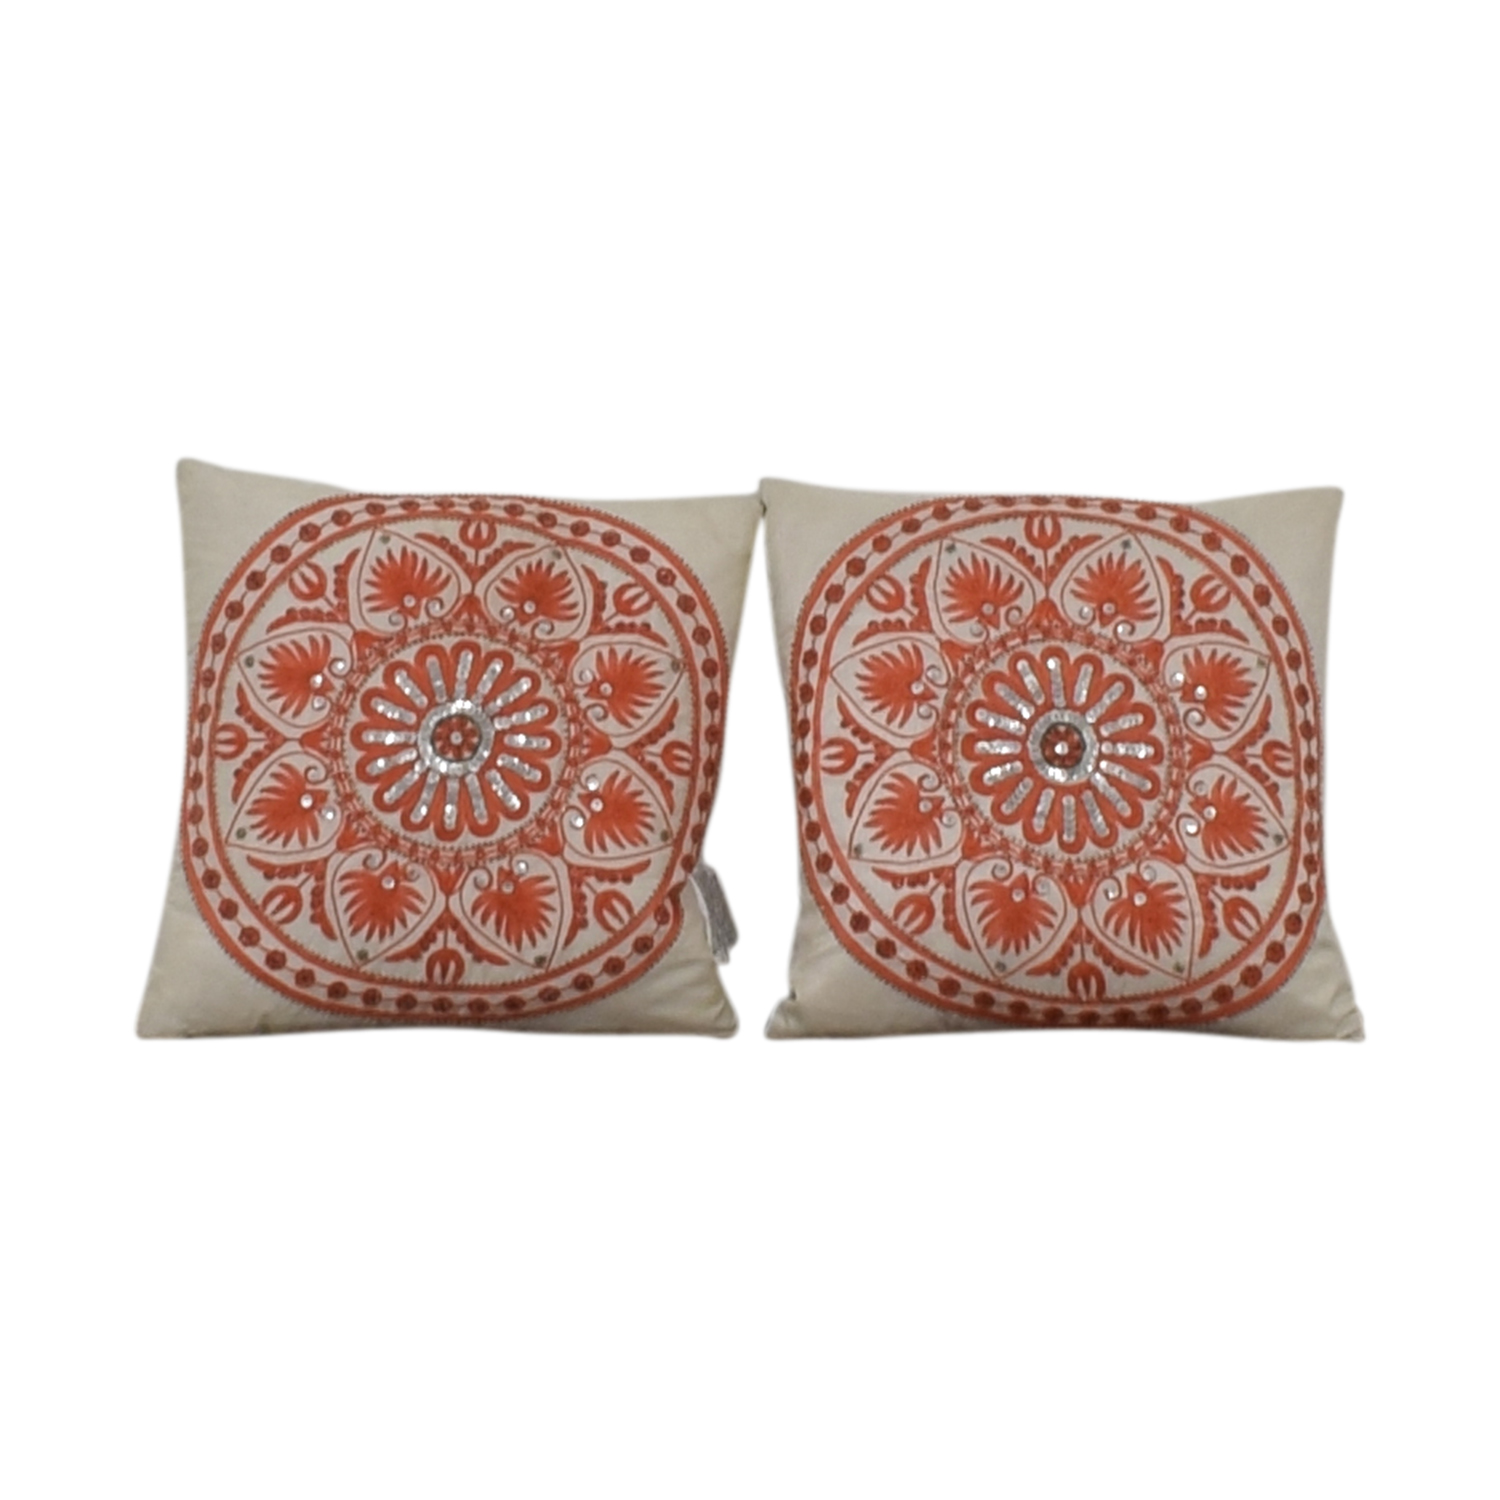 buy Macy's Orange Accent Pillows Macy's Decorative Accents